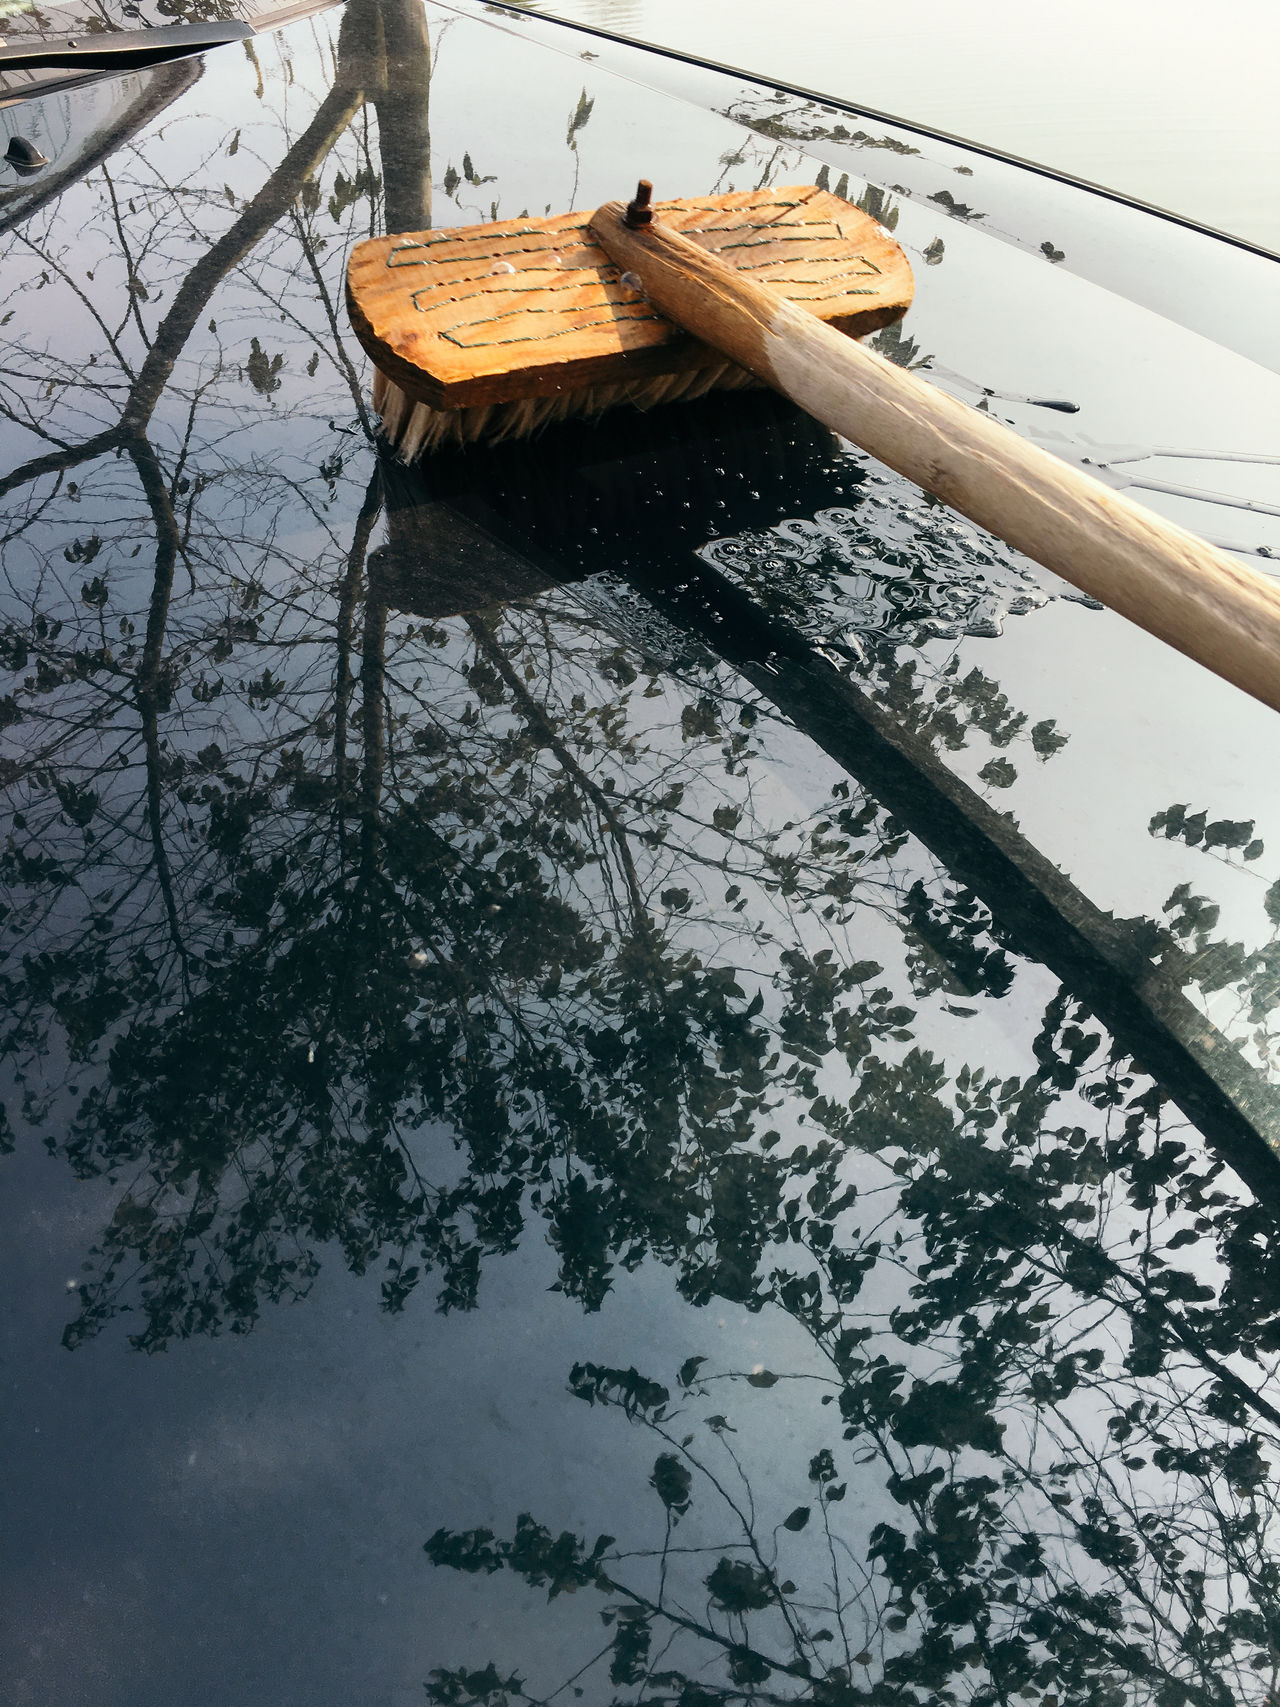 Brush Car Day Low Angle View Nature No People Outdoors Sky Tree Vehicle Cleaning Water